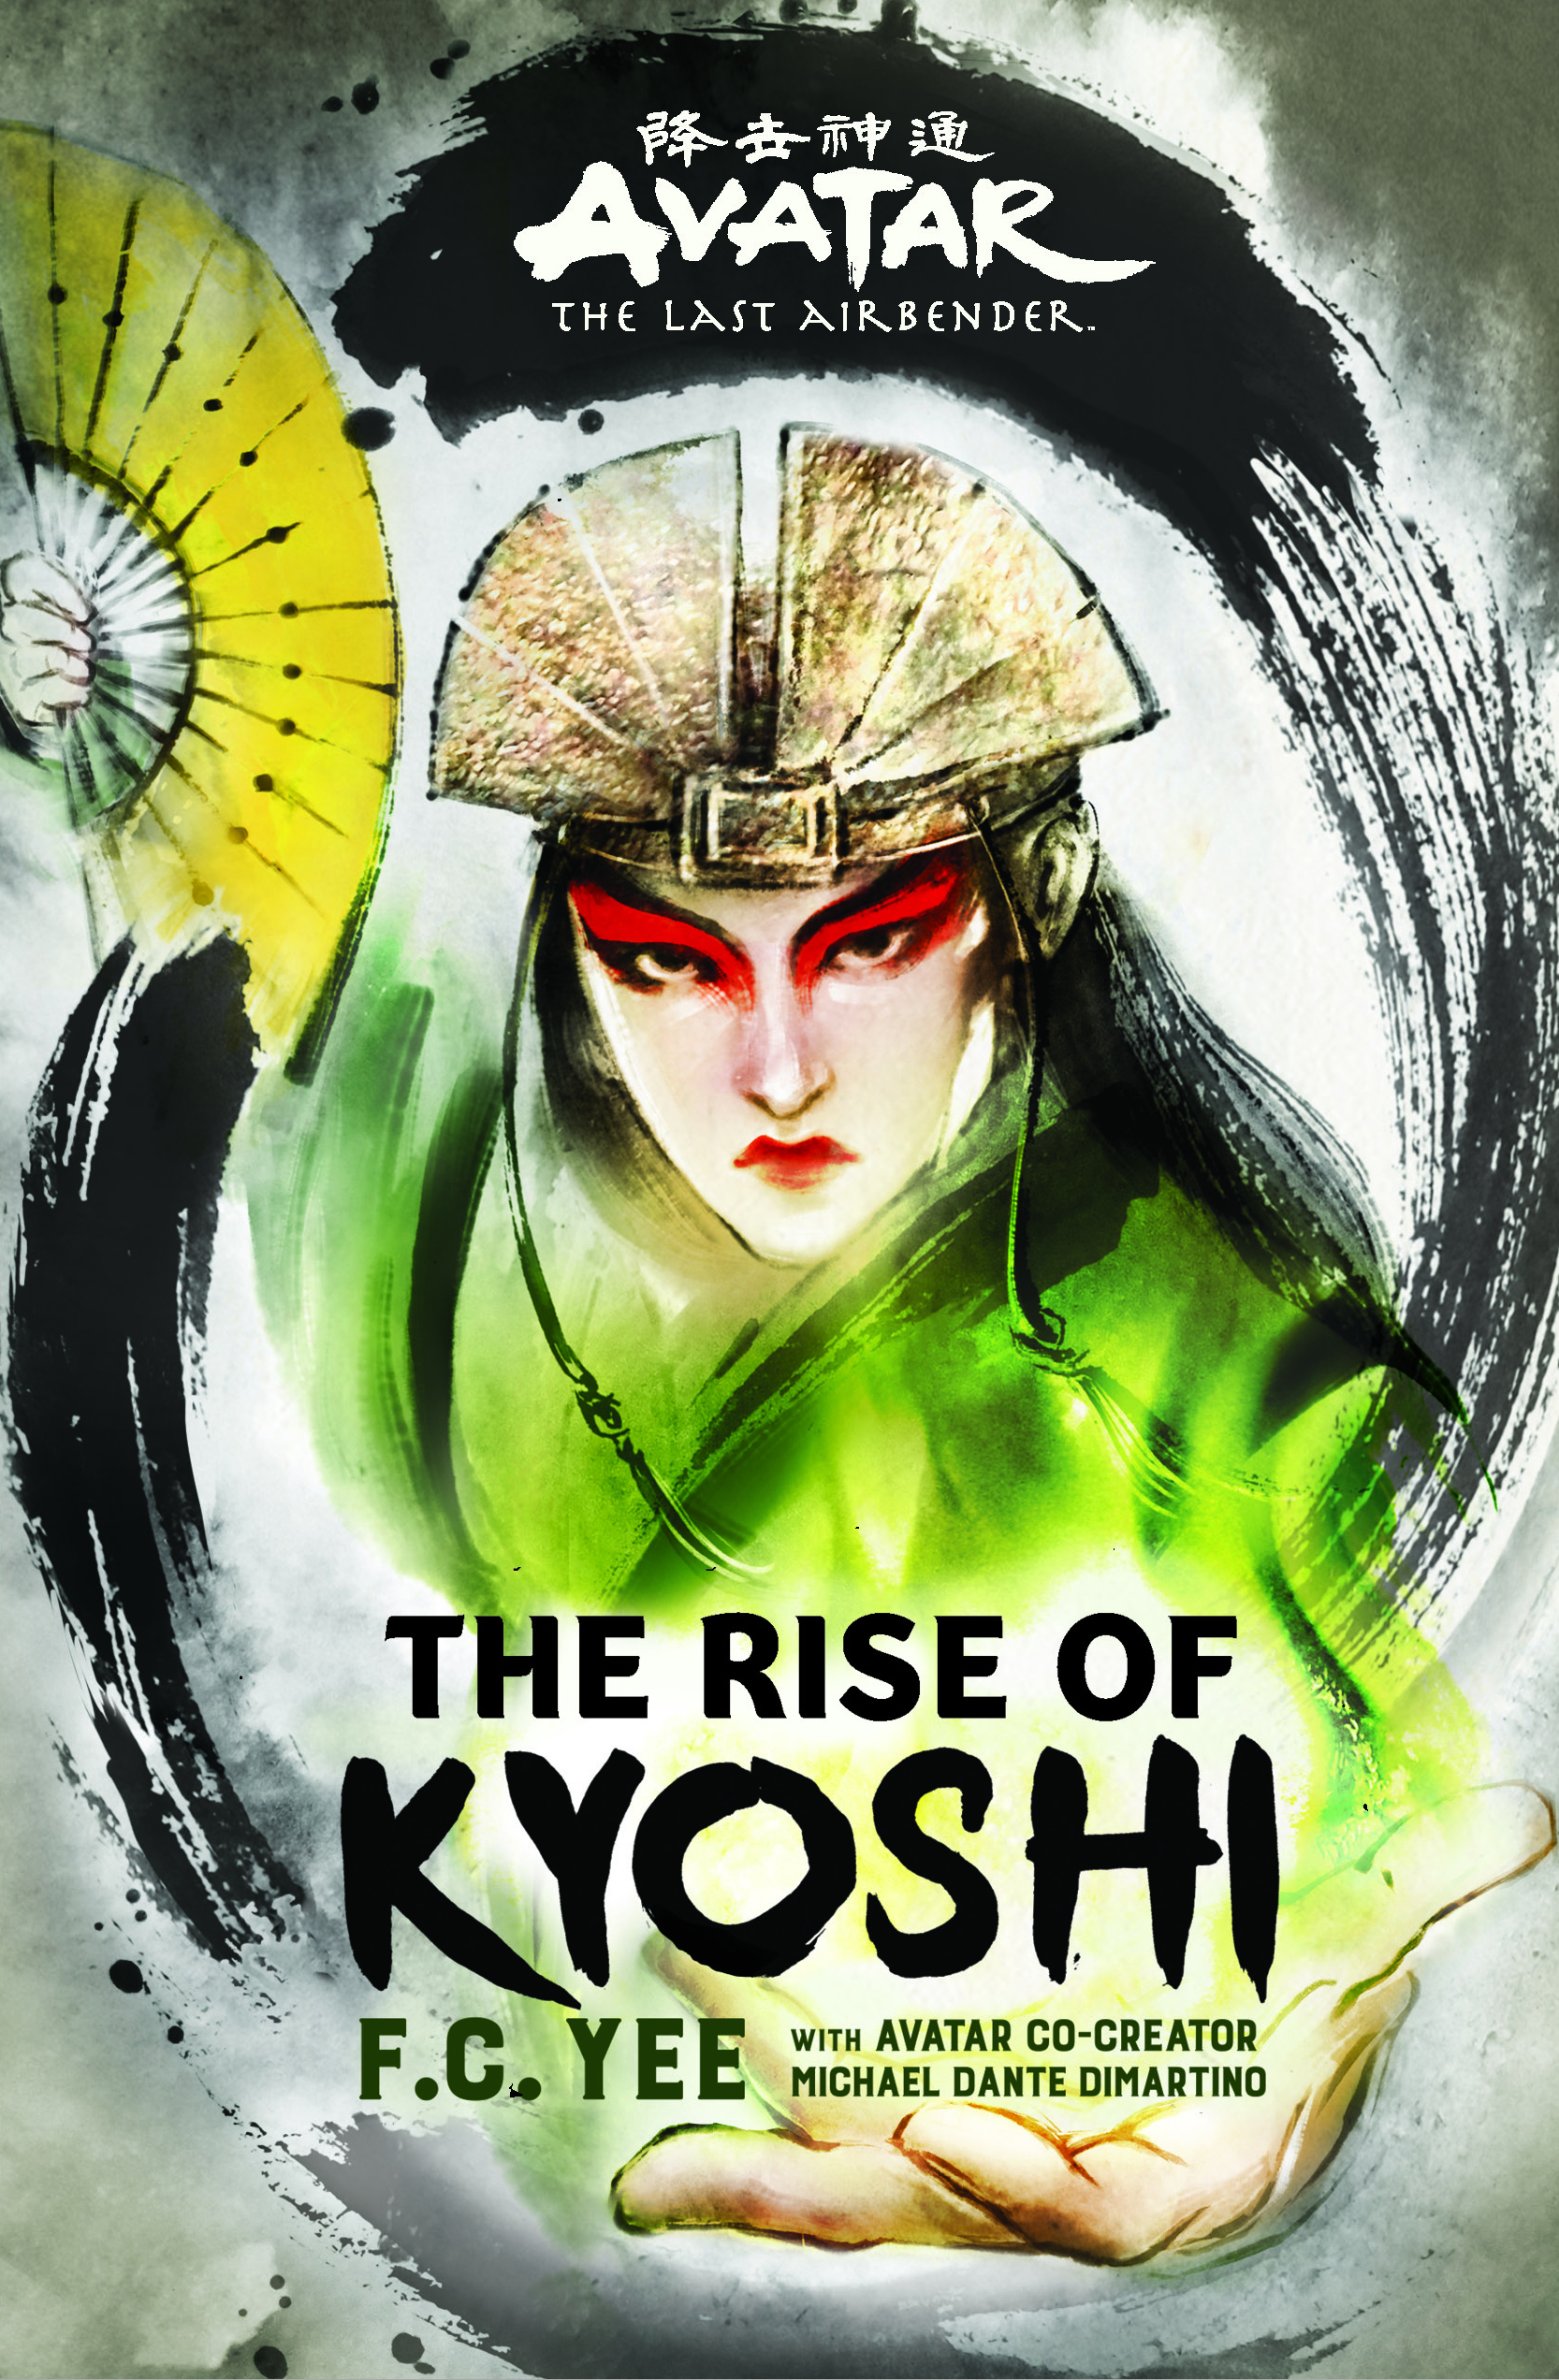 the cover of The Rise of Kyoshi: an illustration of a woman with a painted face, headdress, fans, and a green robe